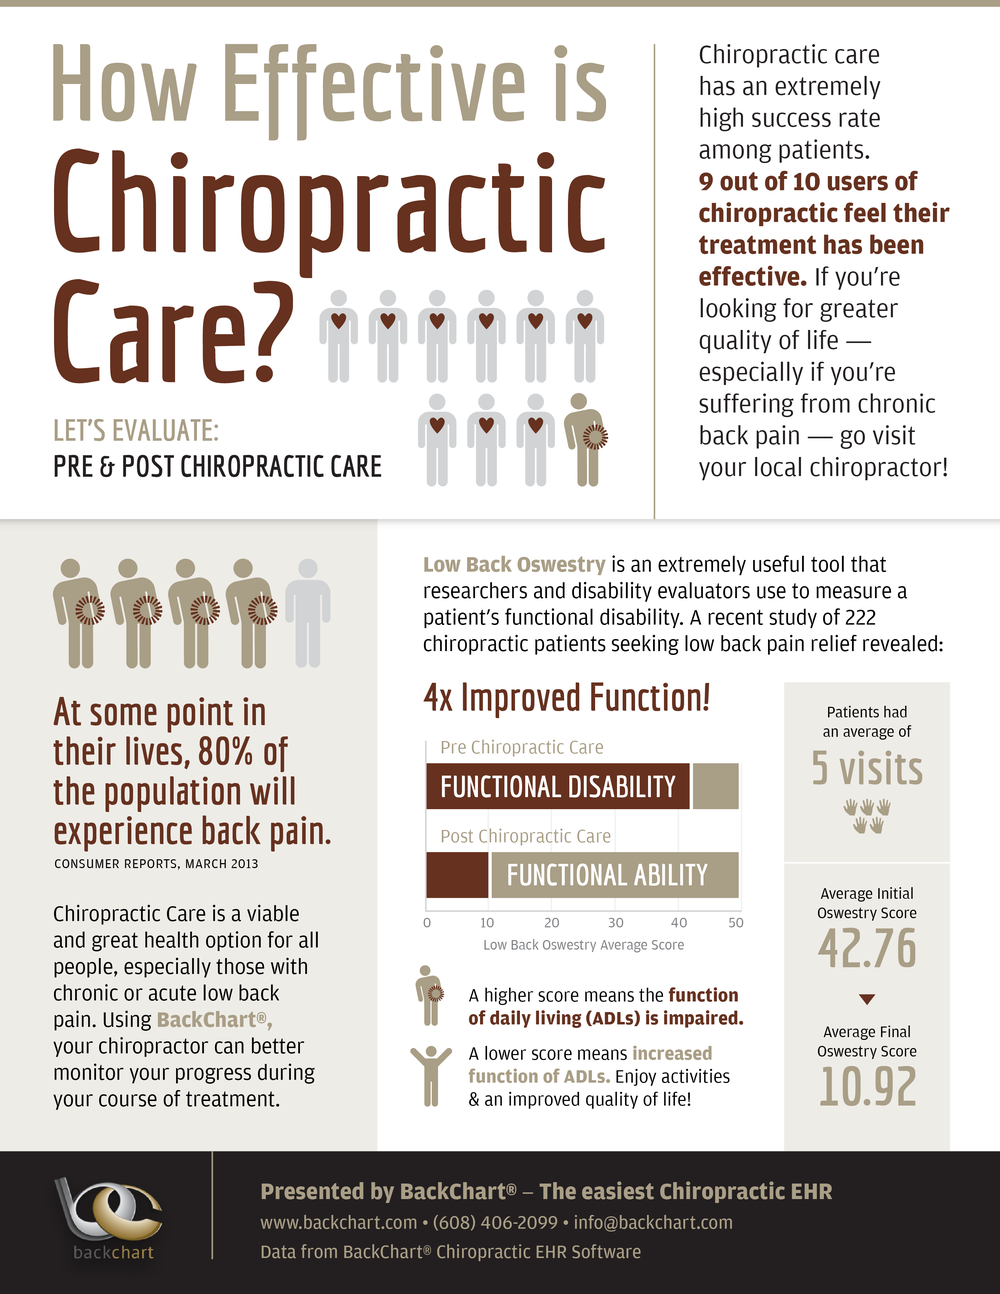 BackChart_Chiropractic_infographic_300.png